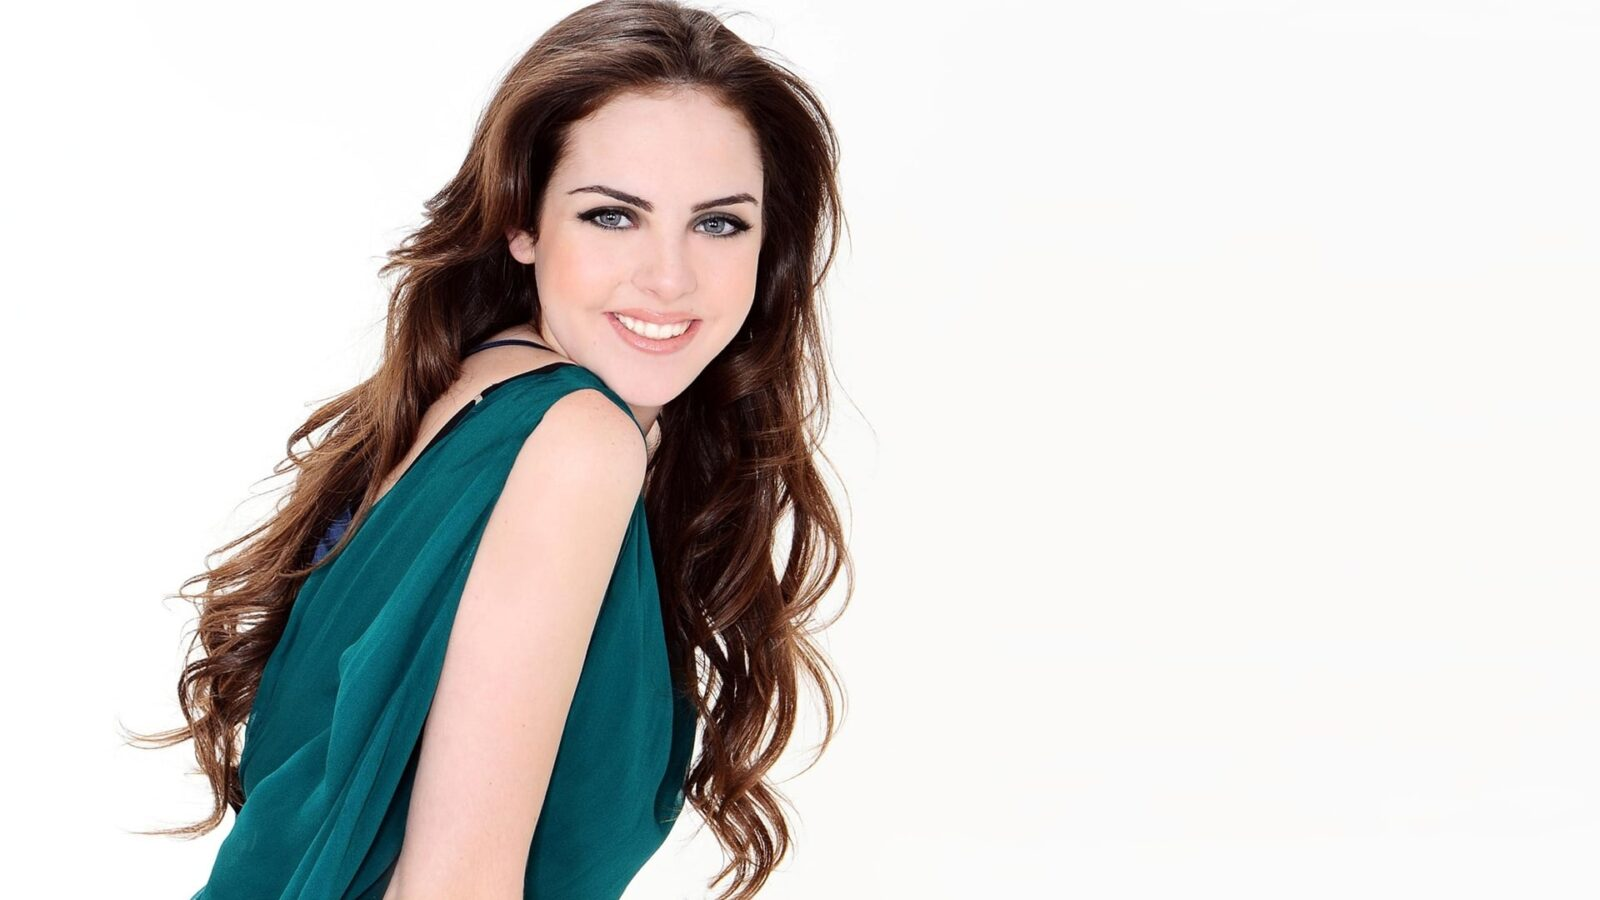 Hd Wallpapers Of Girls And Cars Elizabeth Gillies Hd Wallpapers Free Download